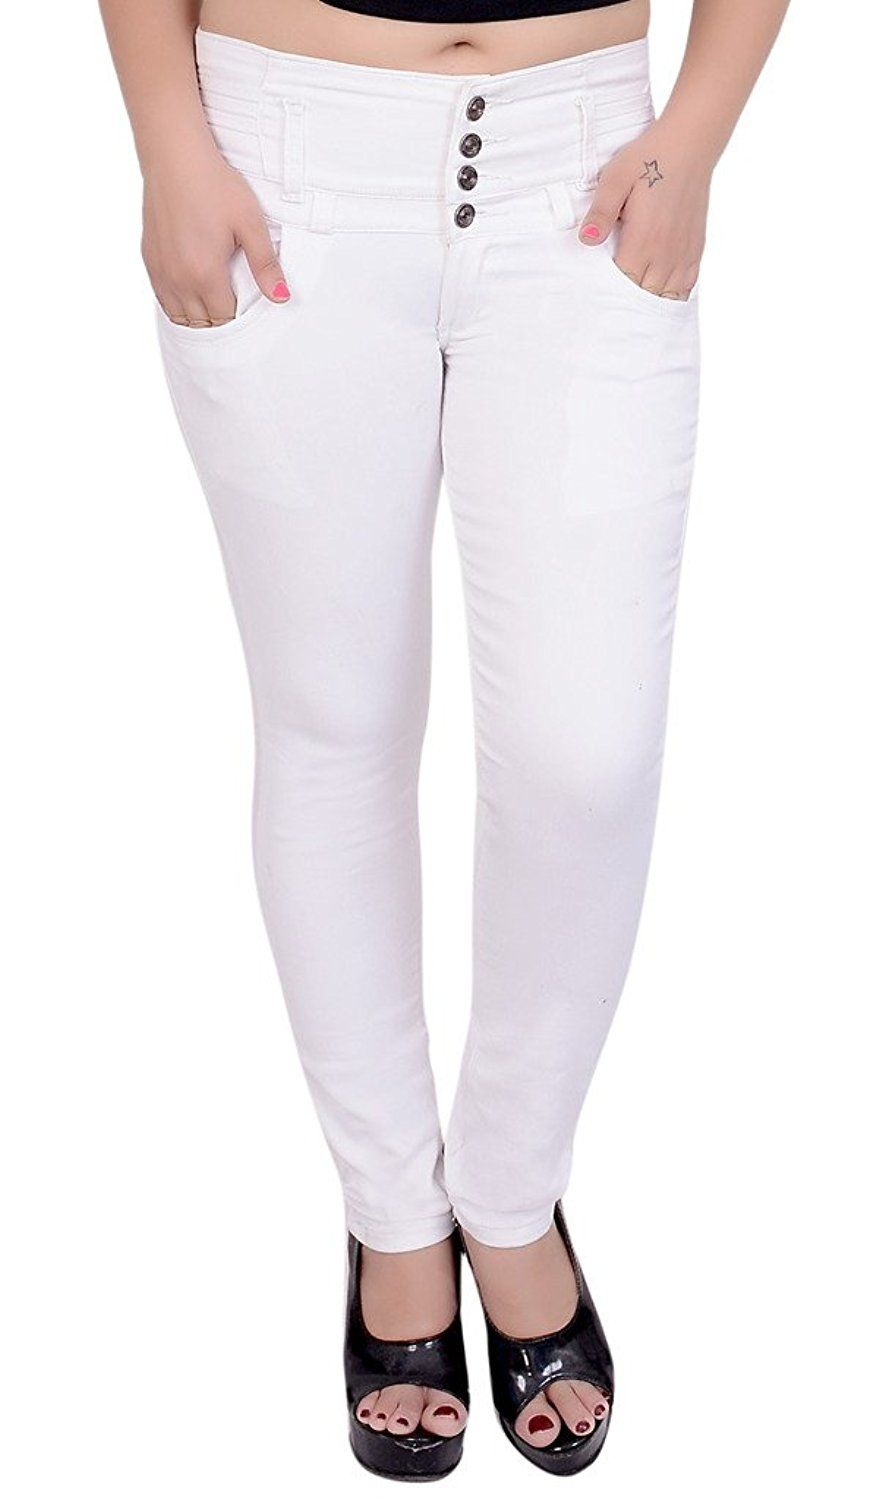 6cce1b503 Nifty Women's White Denim Slim Fit Jeans White Colour Fabric:Denims Slim  Fit and casual wear Brand Name : Nifty Wash Care : hand wash And dry clean